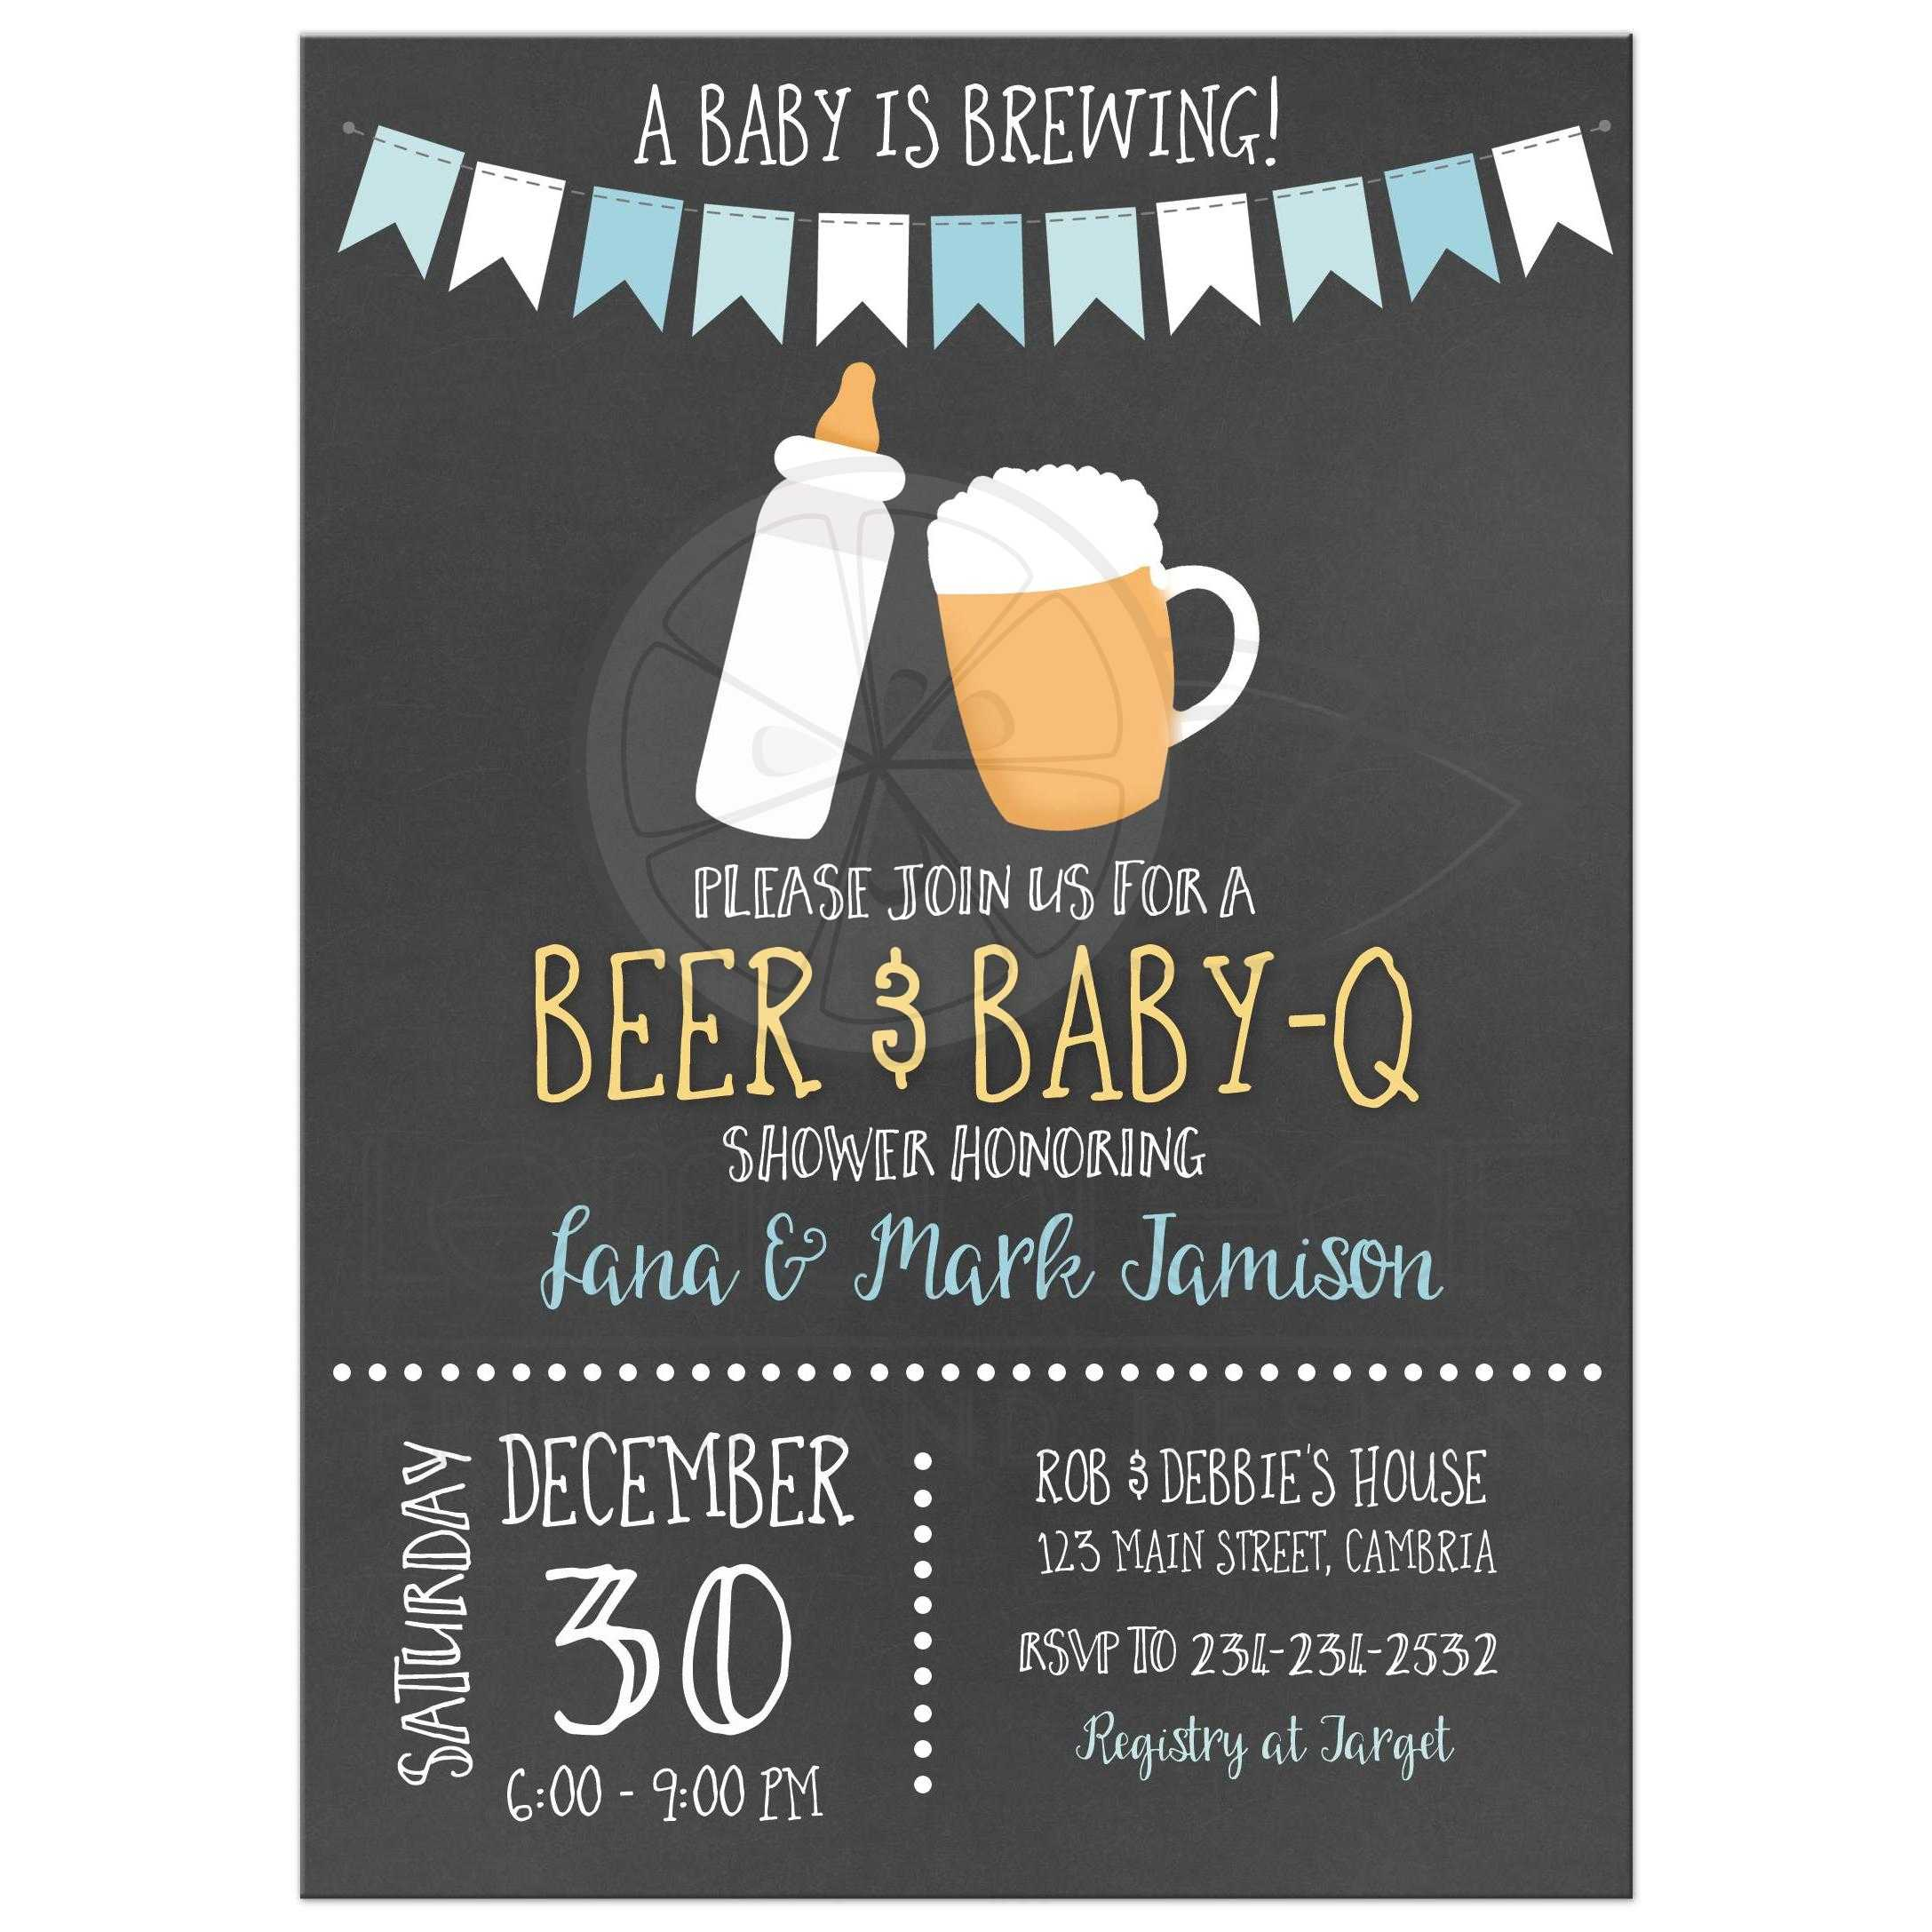 Baby is Brewing BBQ BabyQ CoEd Chalkboard Baby Shower Invitations